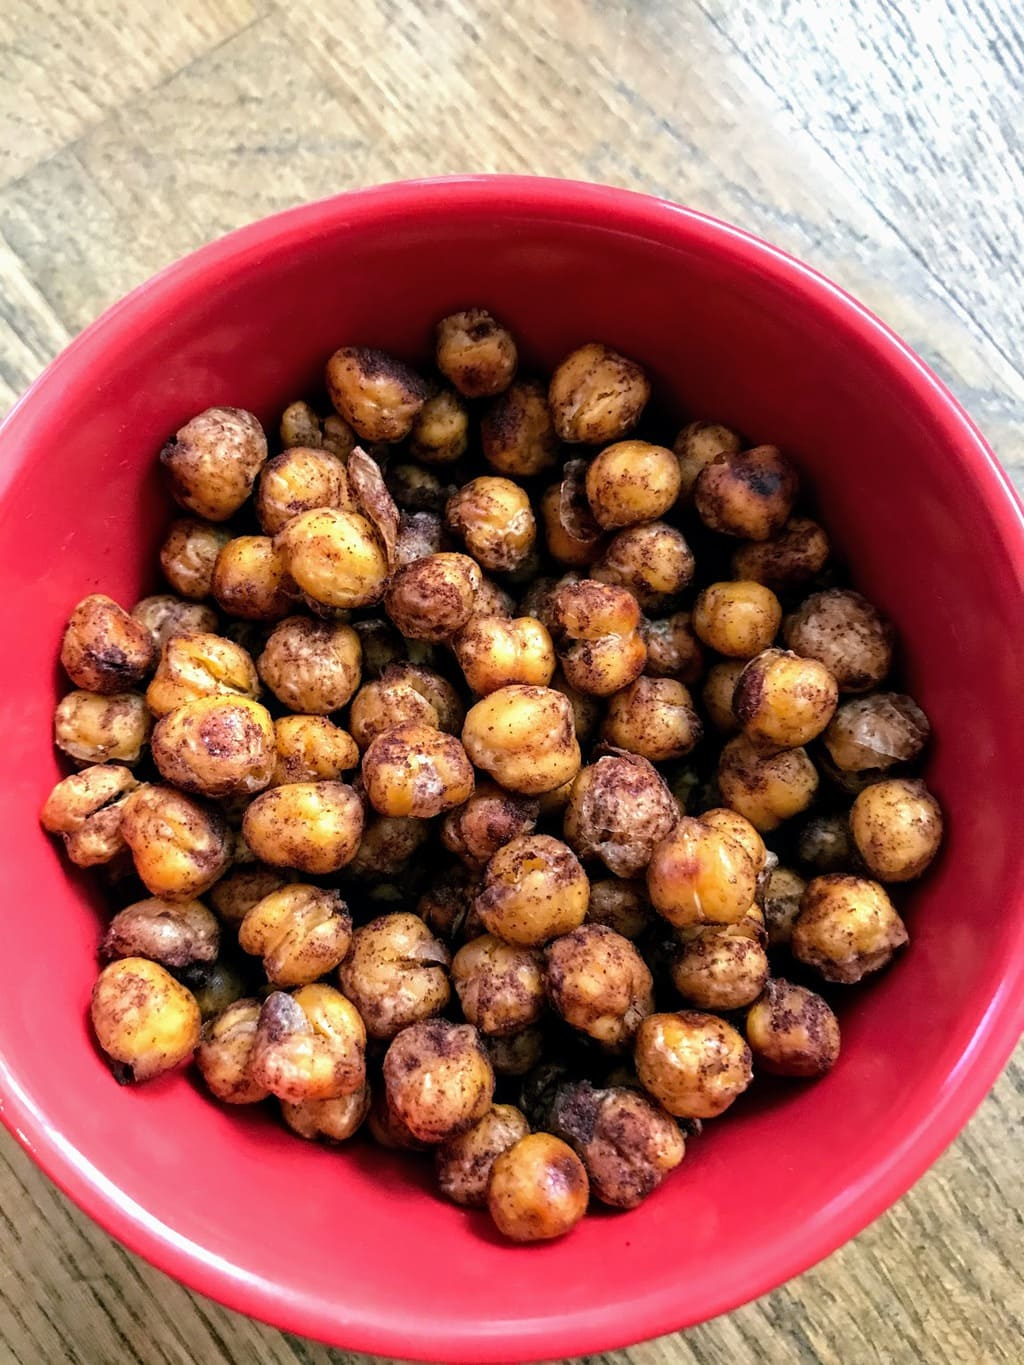 Roasted Chickpeas with Cinnamon and Sugar